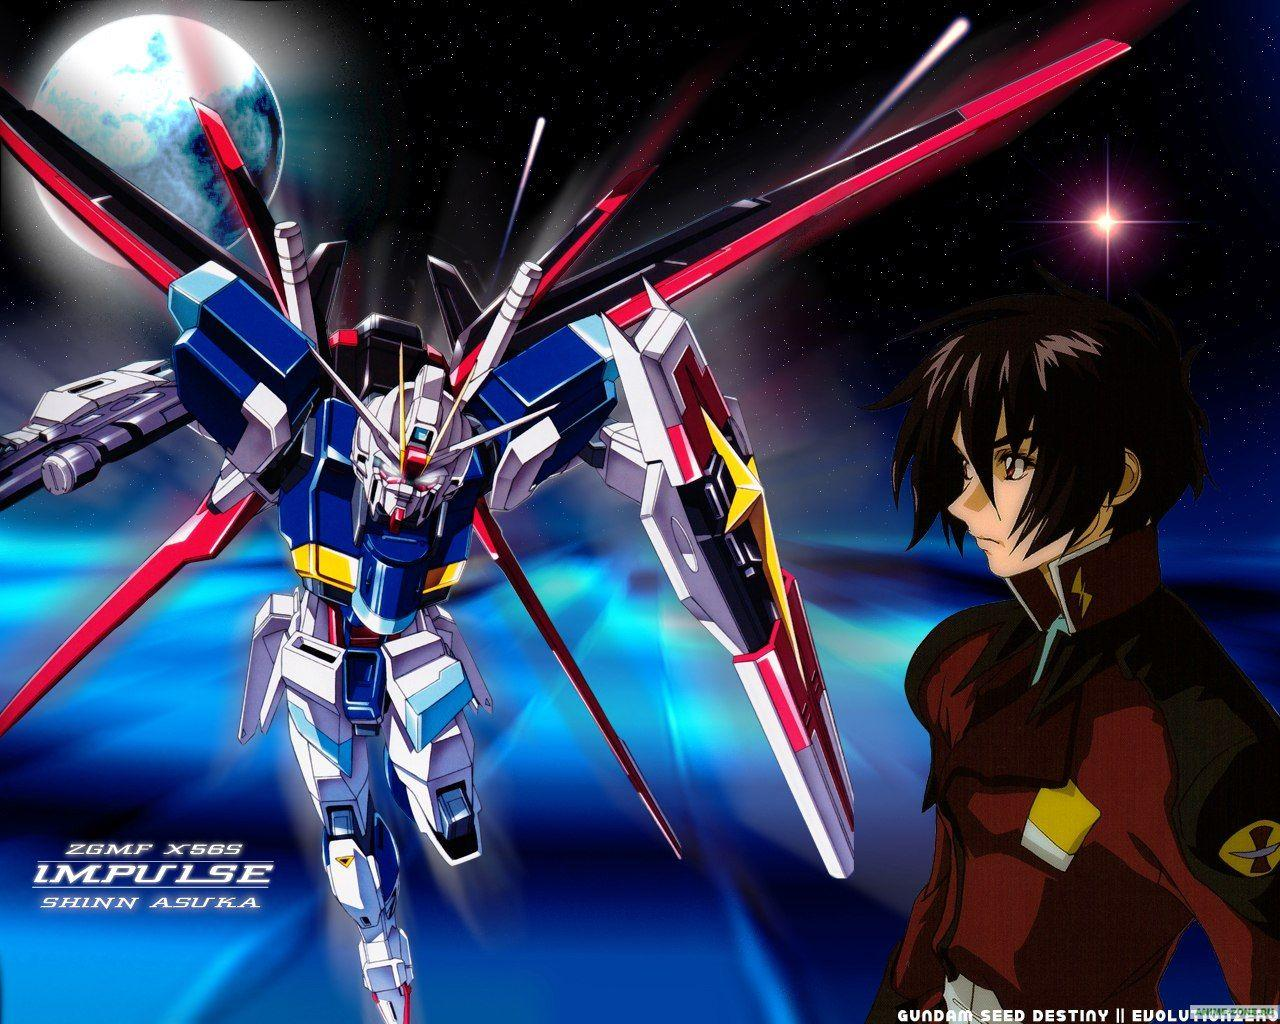 Mobile Suit Gundam SEED Destiny Wallpapers - Wallpaper Cave